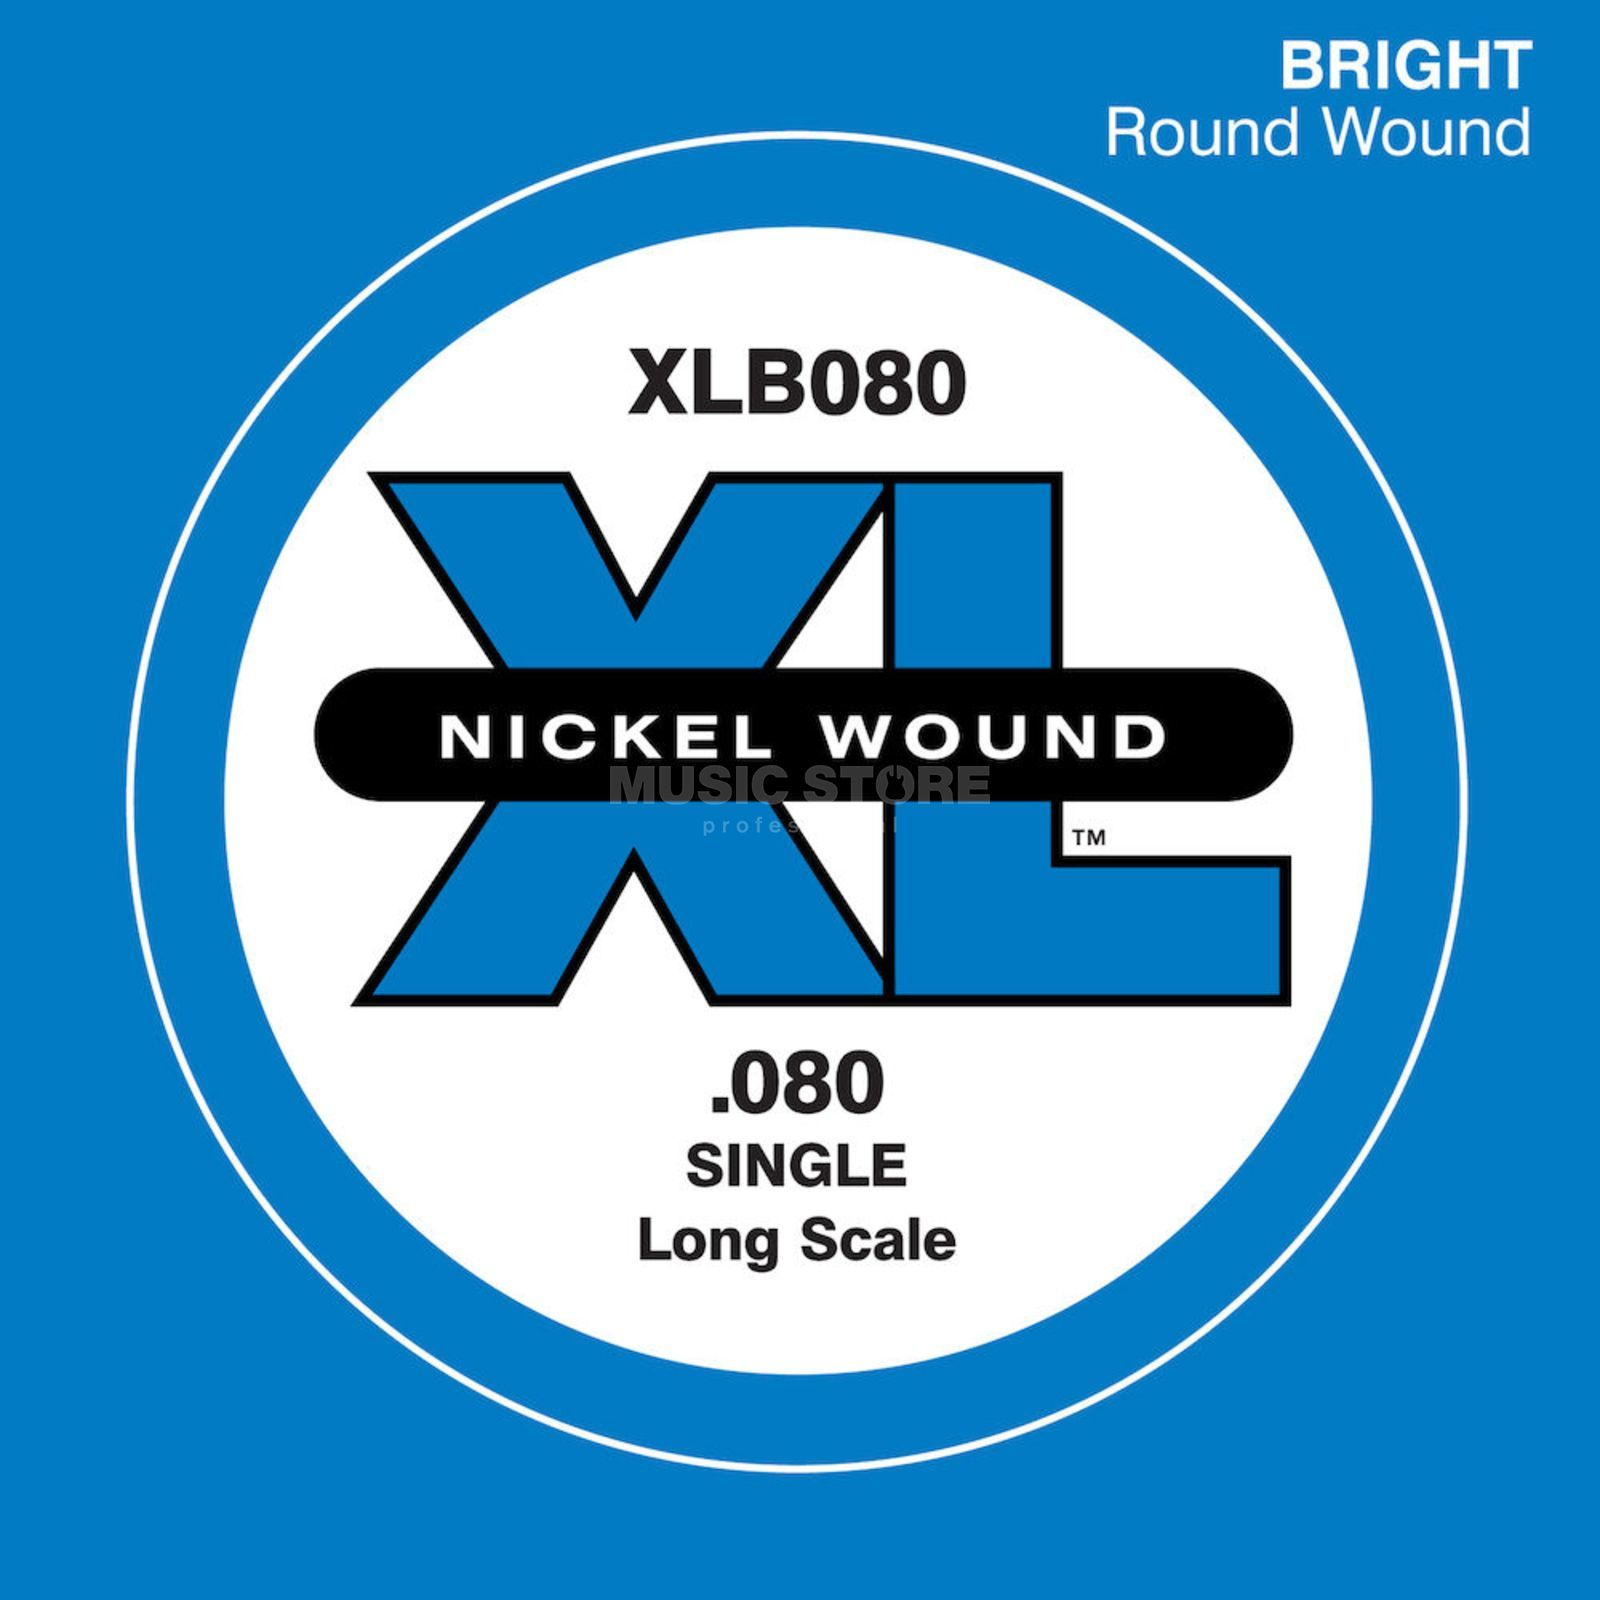 D'Addario Bass Single String XLB080 XL Nickel Wound Product Image